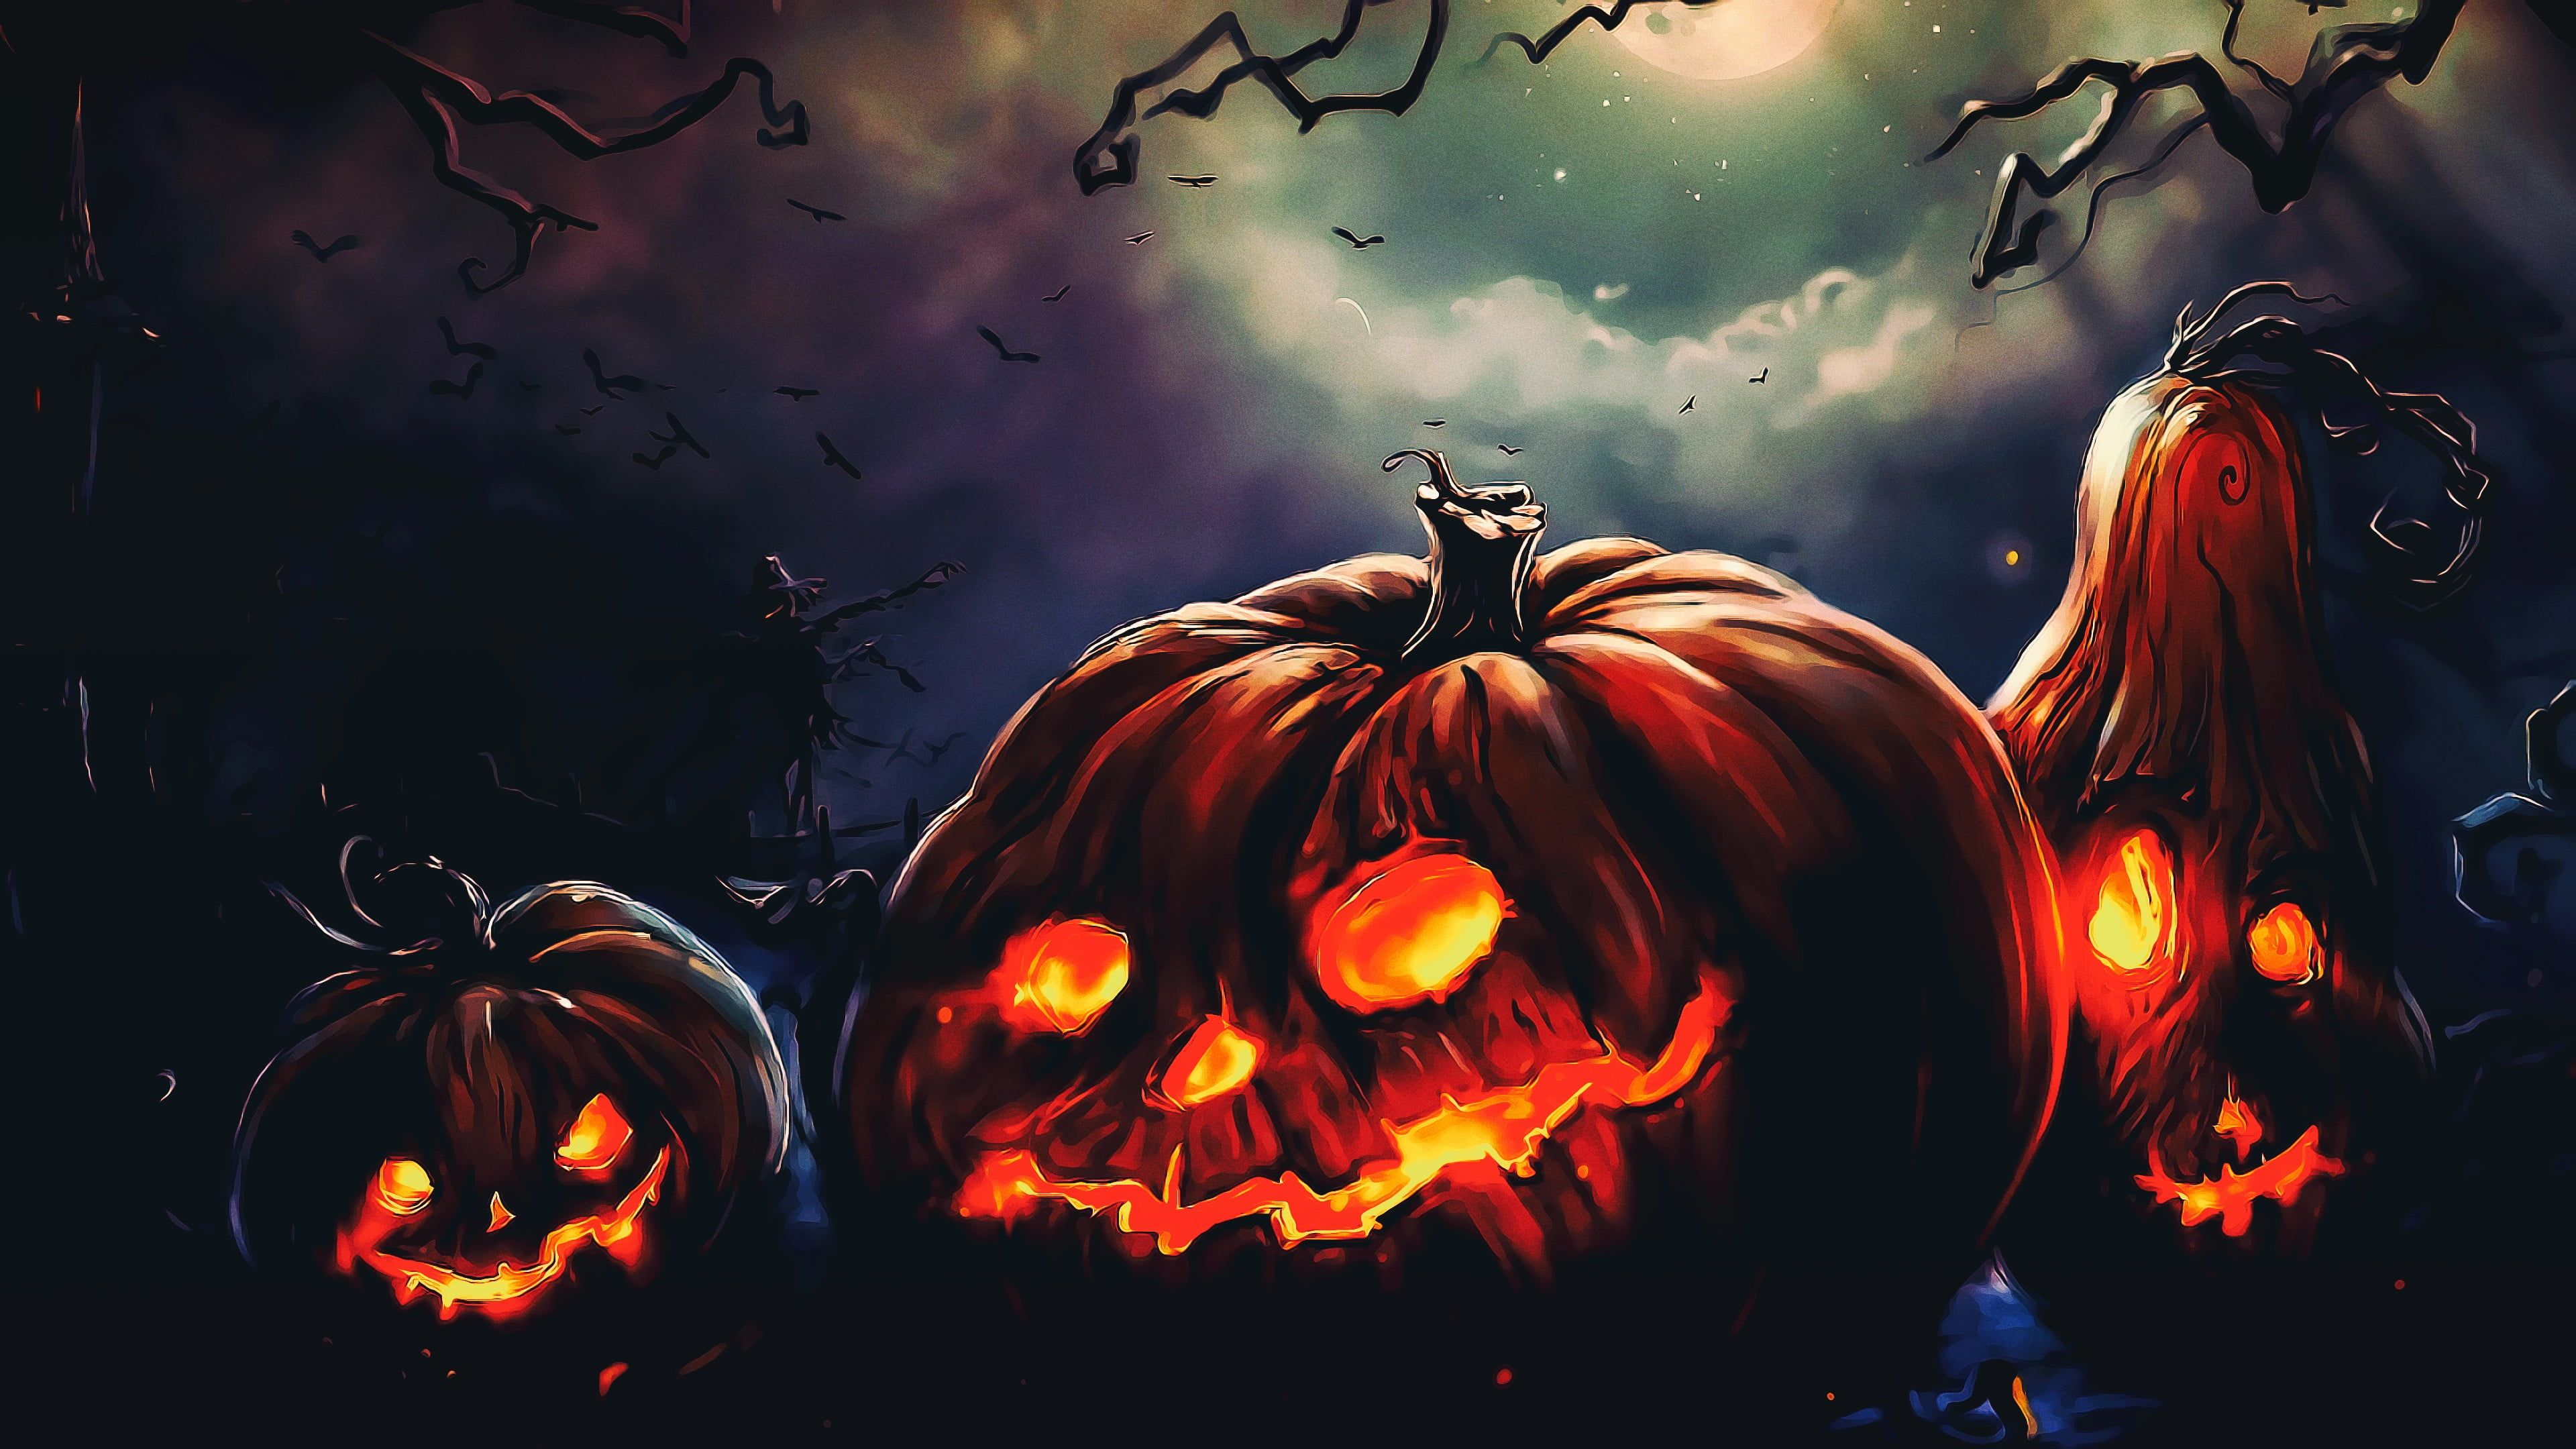 Jack O Lantern Wallpaper Halloween Terror Night Fantasy Art Photoshop 4k Wallpaper Hdwallpaper Desktop In 2020 Halloween Wallpaper Wallpaper Halloween